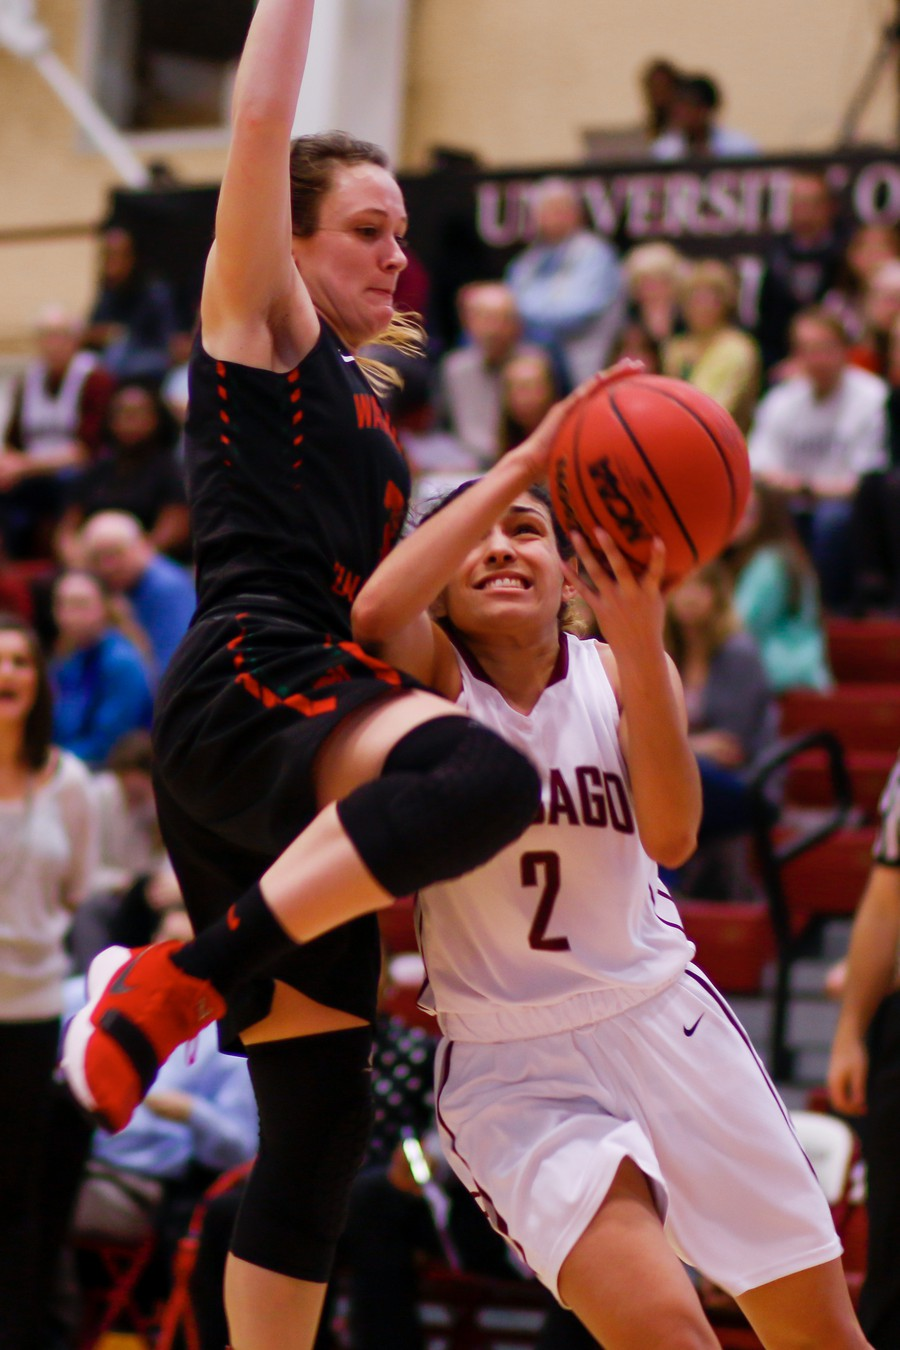 Second-year Mia Farrell gets physical as she goes up for a lay-up against Wash U.